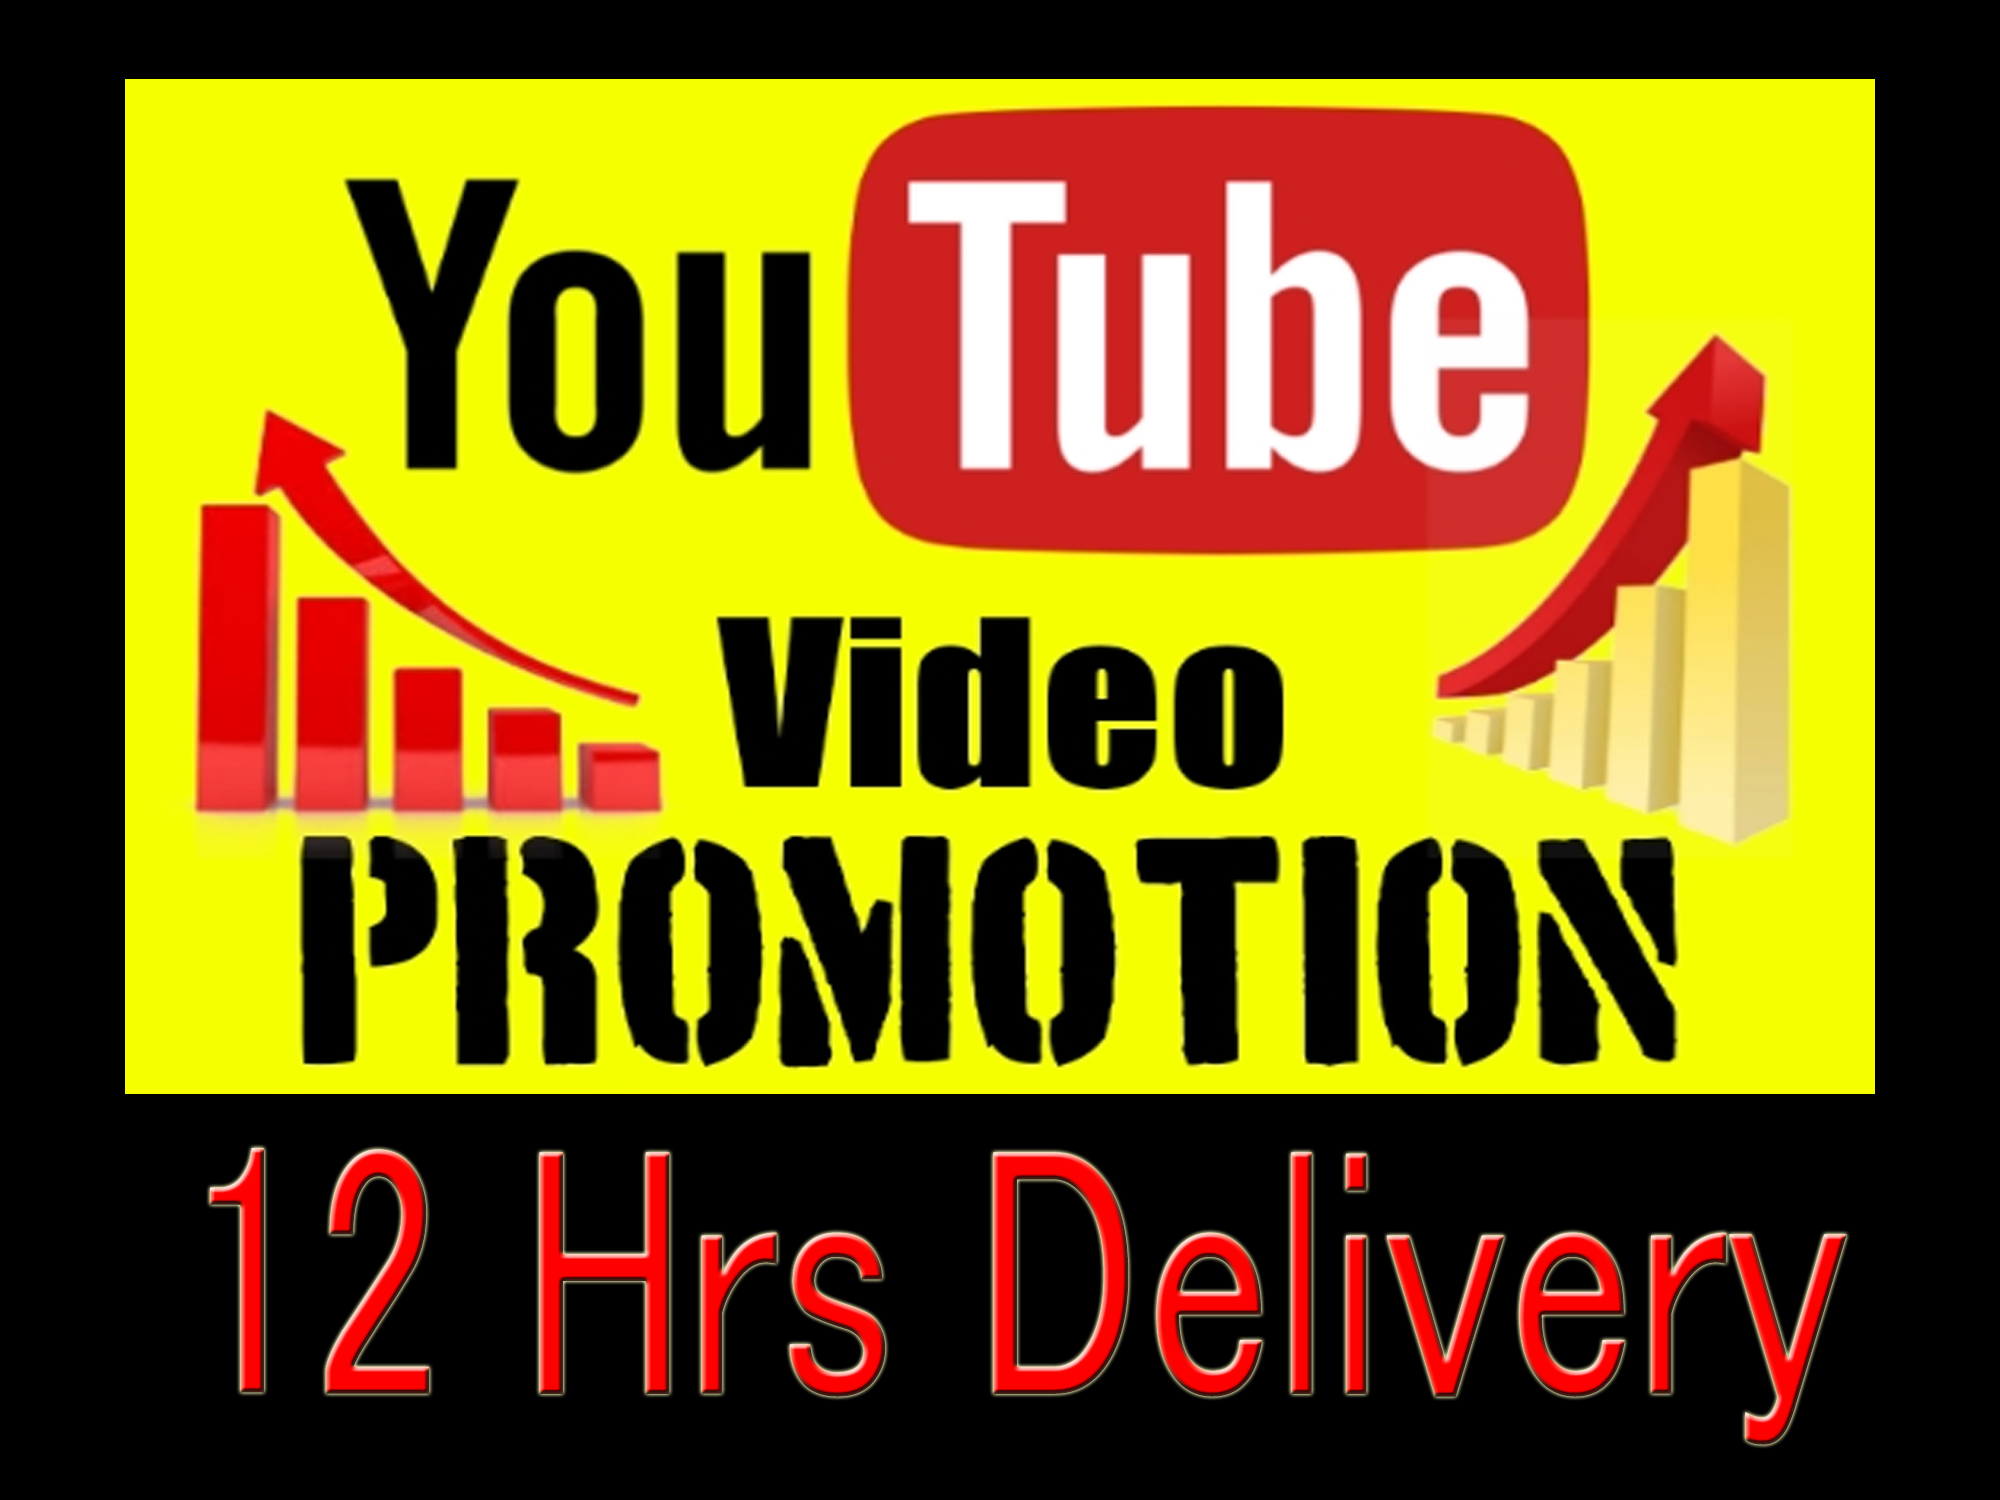 Organic Youtube Video Marketing and Promotion